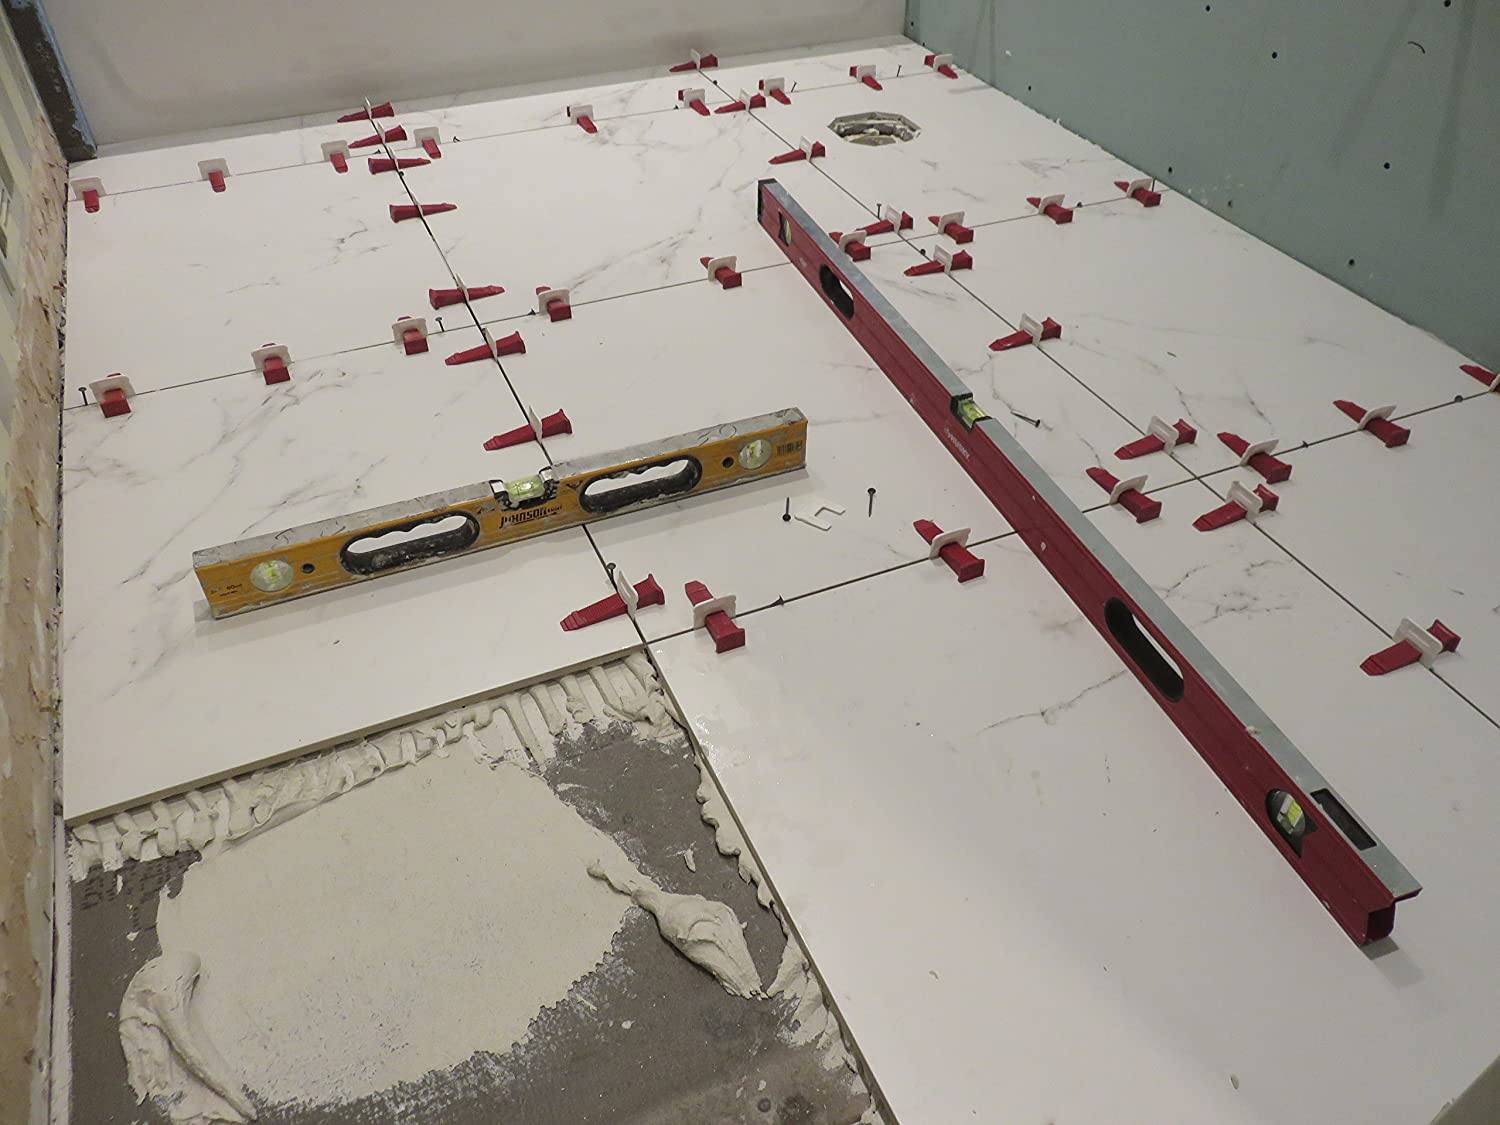 3mm 1500 Clips  PERFECT LEVEL MASTER /™ Professional  Anti lippage  Tile leveling system - spacers only T-Lock /™ 1//8 Red wedges not included and sold separately